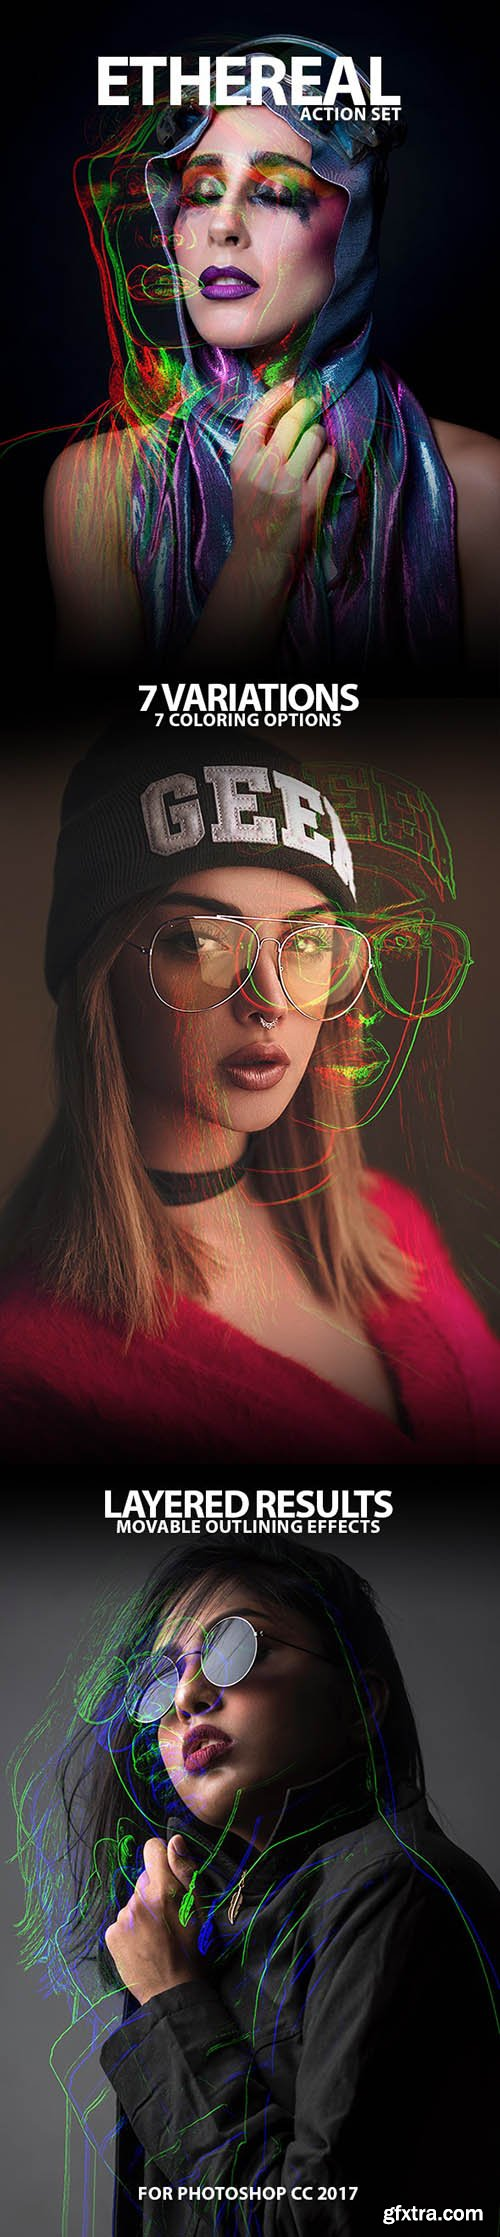 GraphicRiver - Ethereal Photo Action Set 32289934